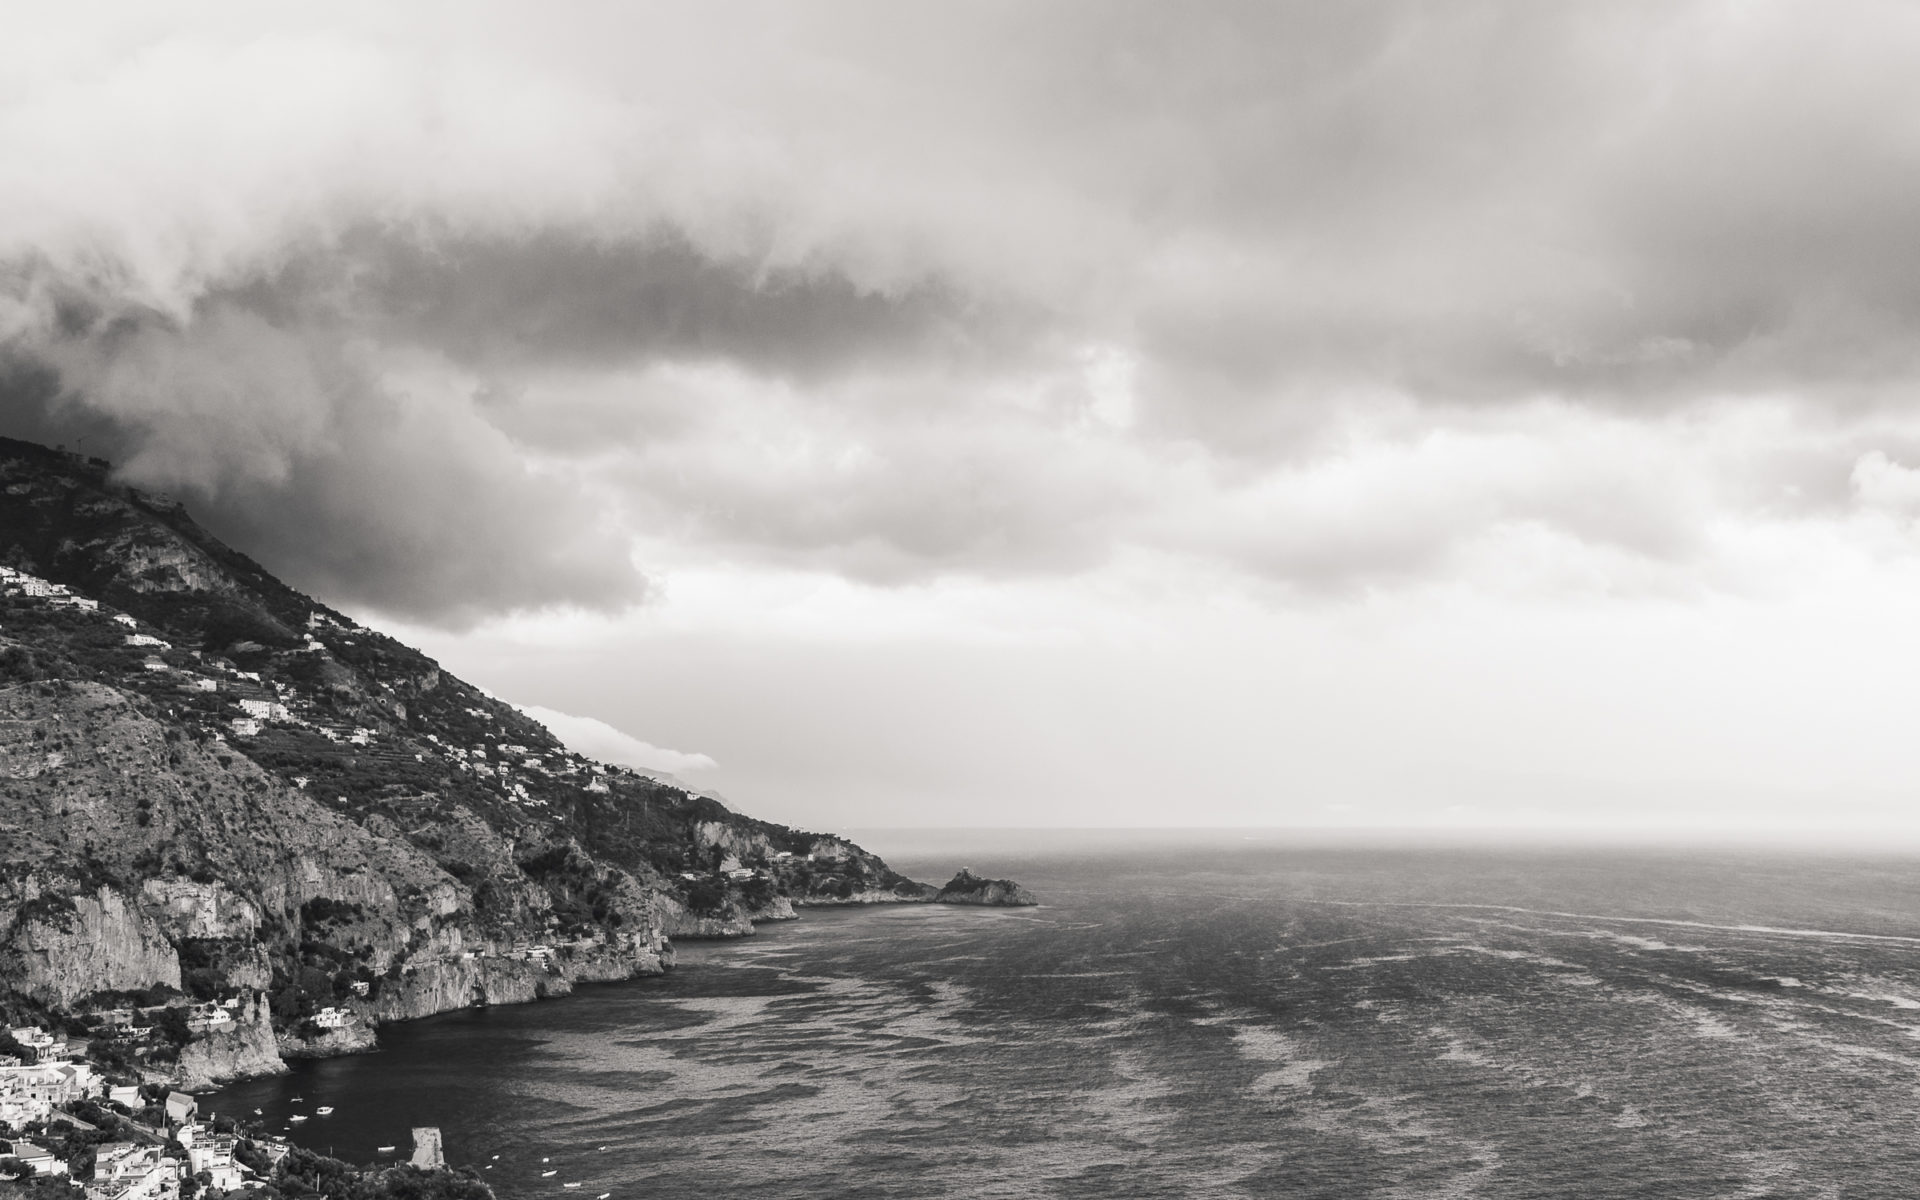 Praiano Italy before a storm